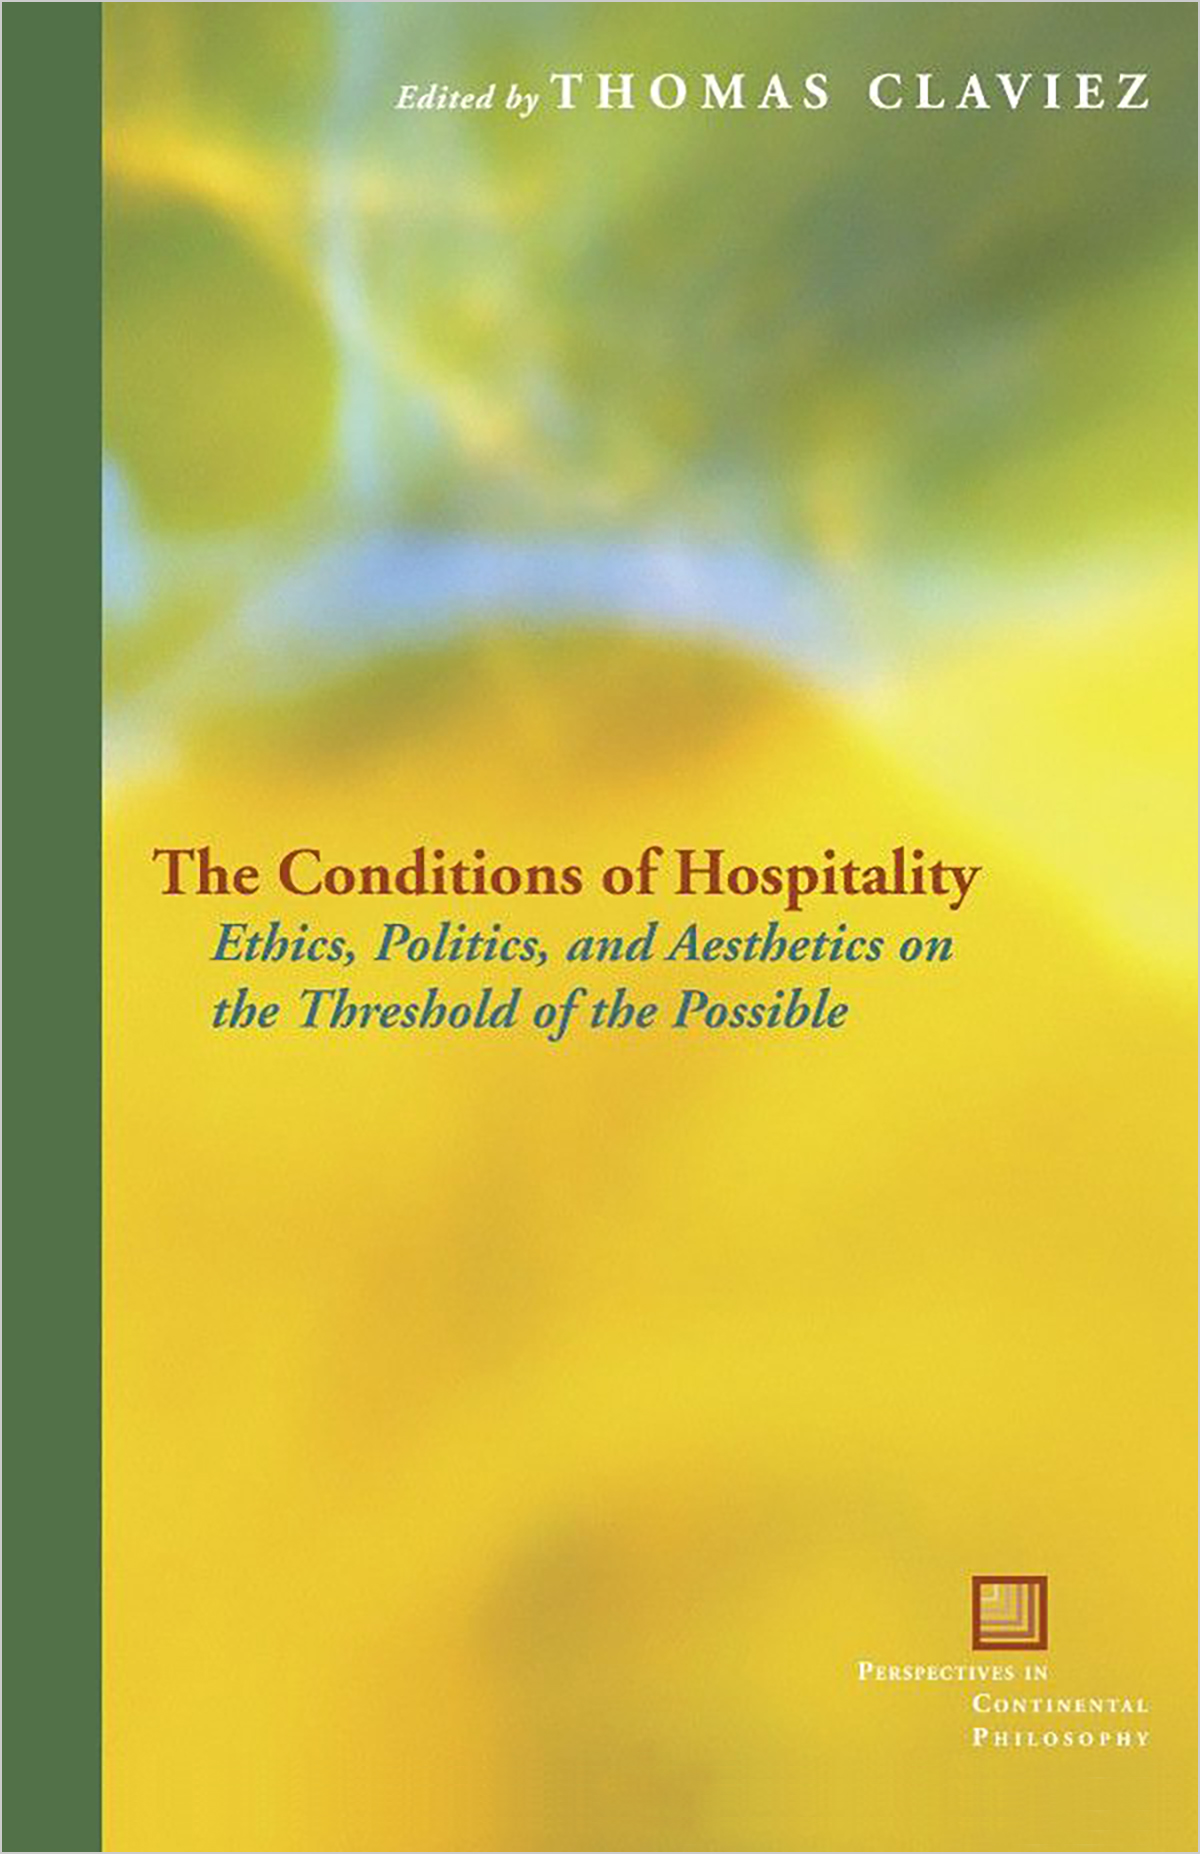 The Conditions of Hospitality: Ethics, Politics and Aesthetics on the Threshold of the Possible. New York: Fordham UP, 2013.